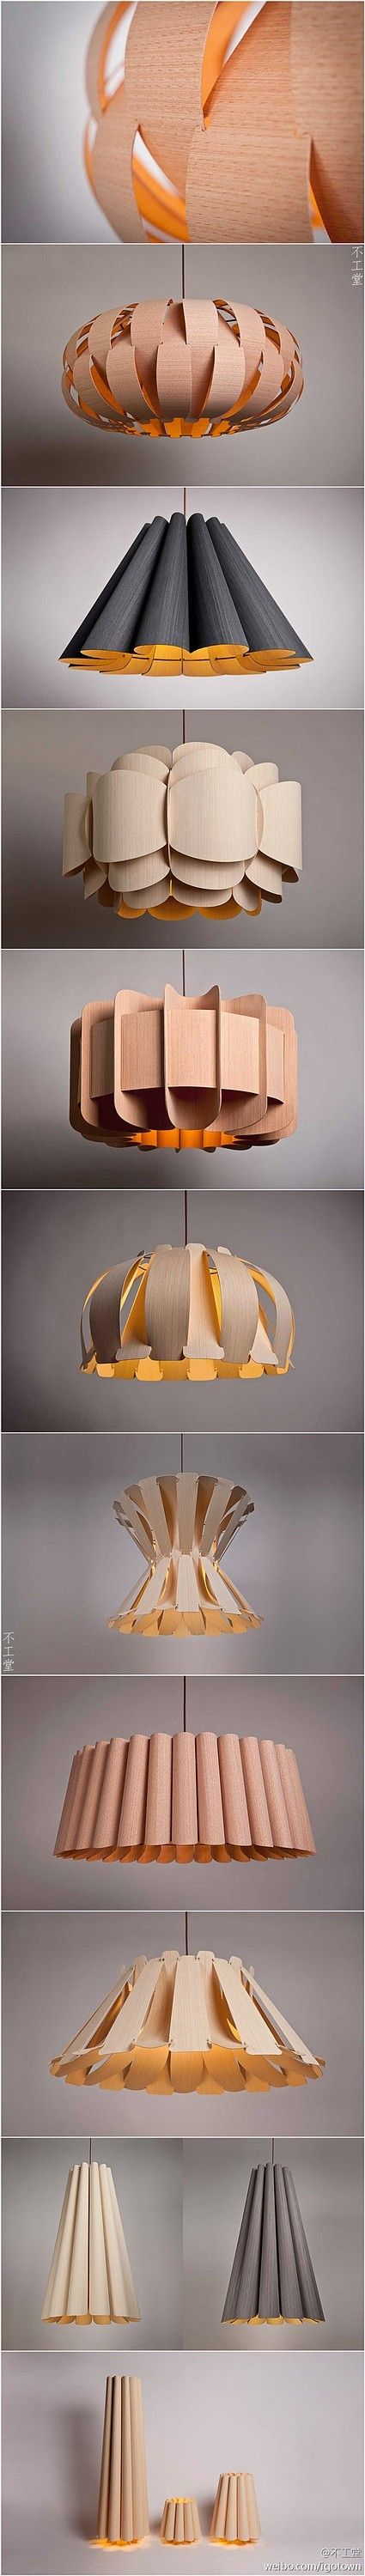 25 beautiful diy wood lamps and chandeliers that will light up your home 25 beautiful diy wood lamps and chandeliers that will light up your home homesthetics arubaitofo Images